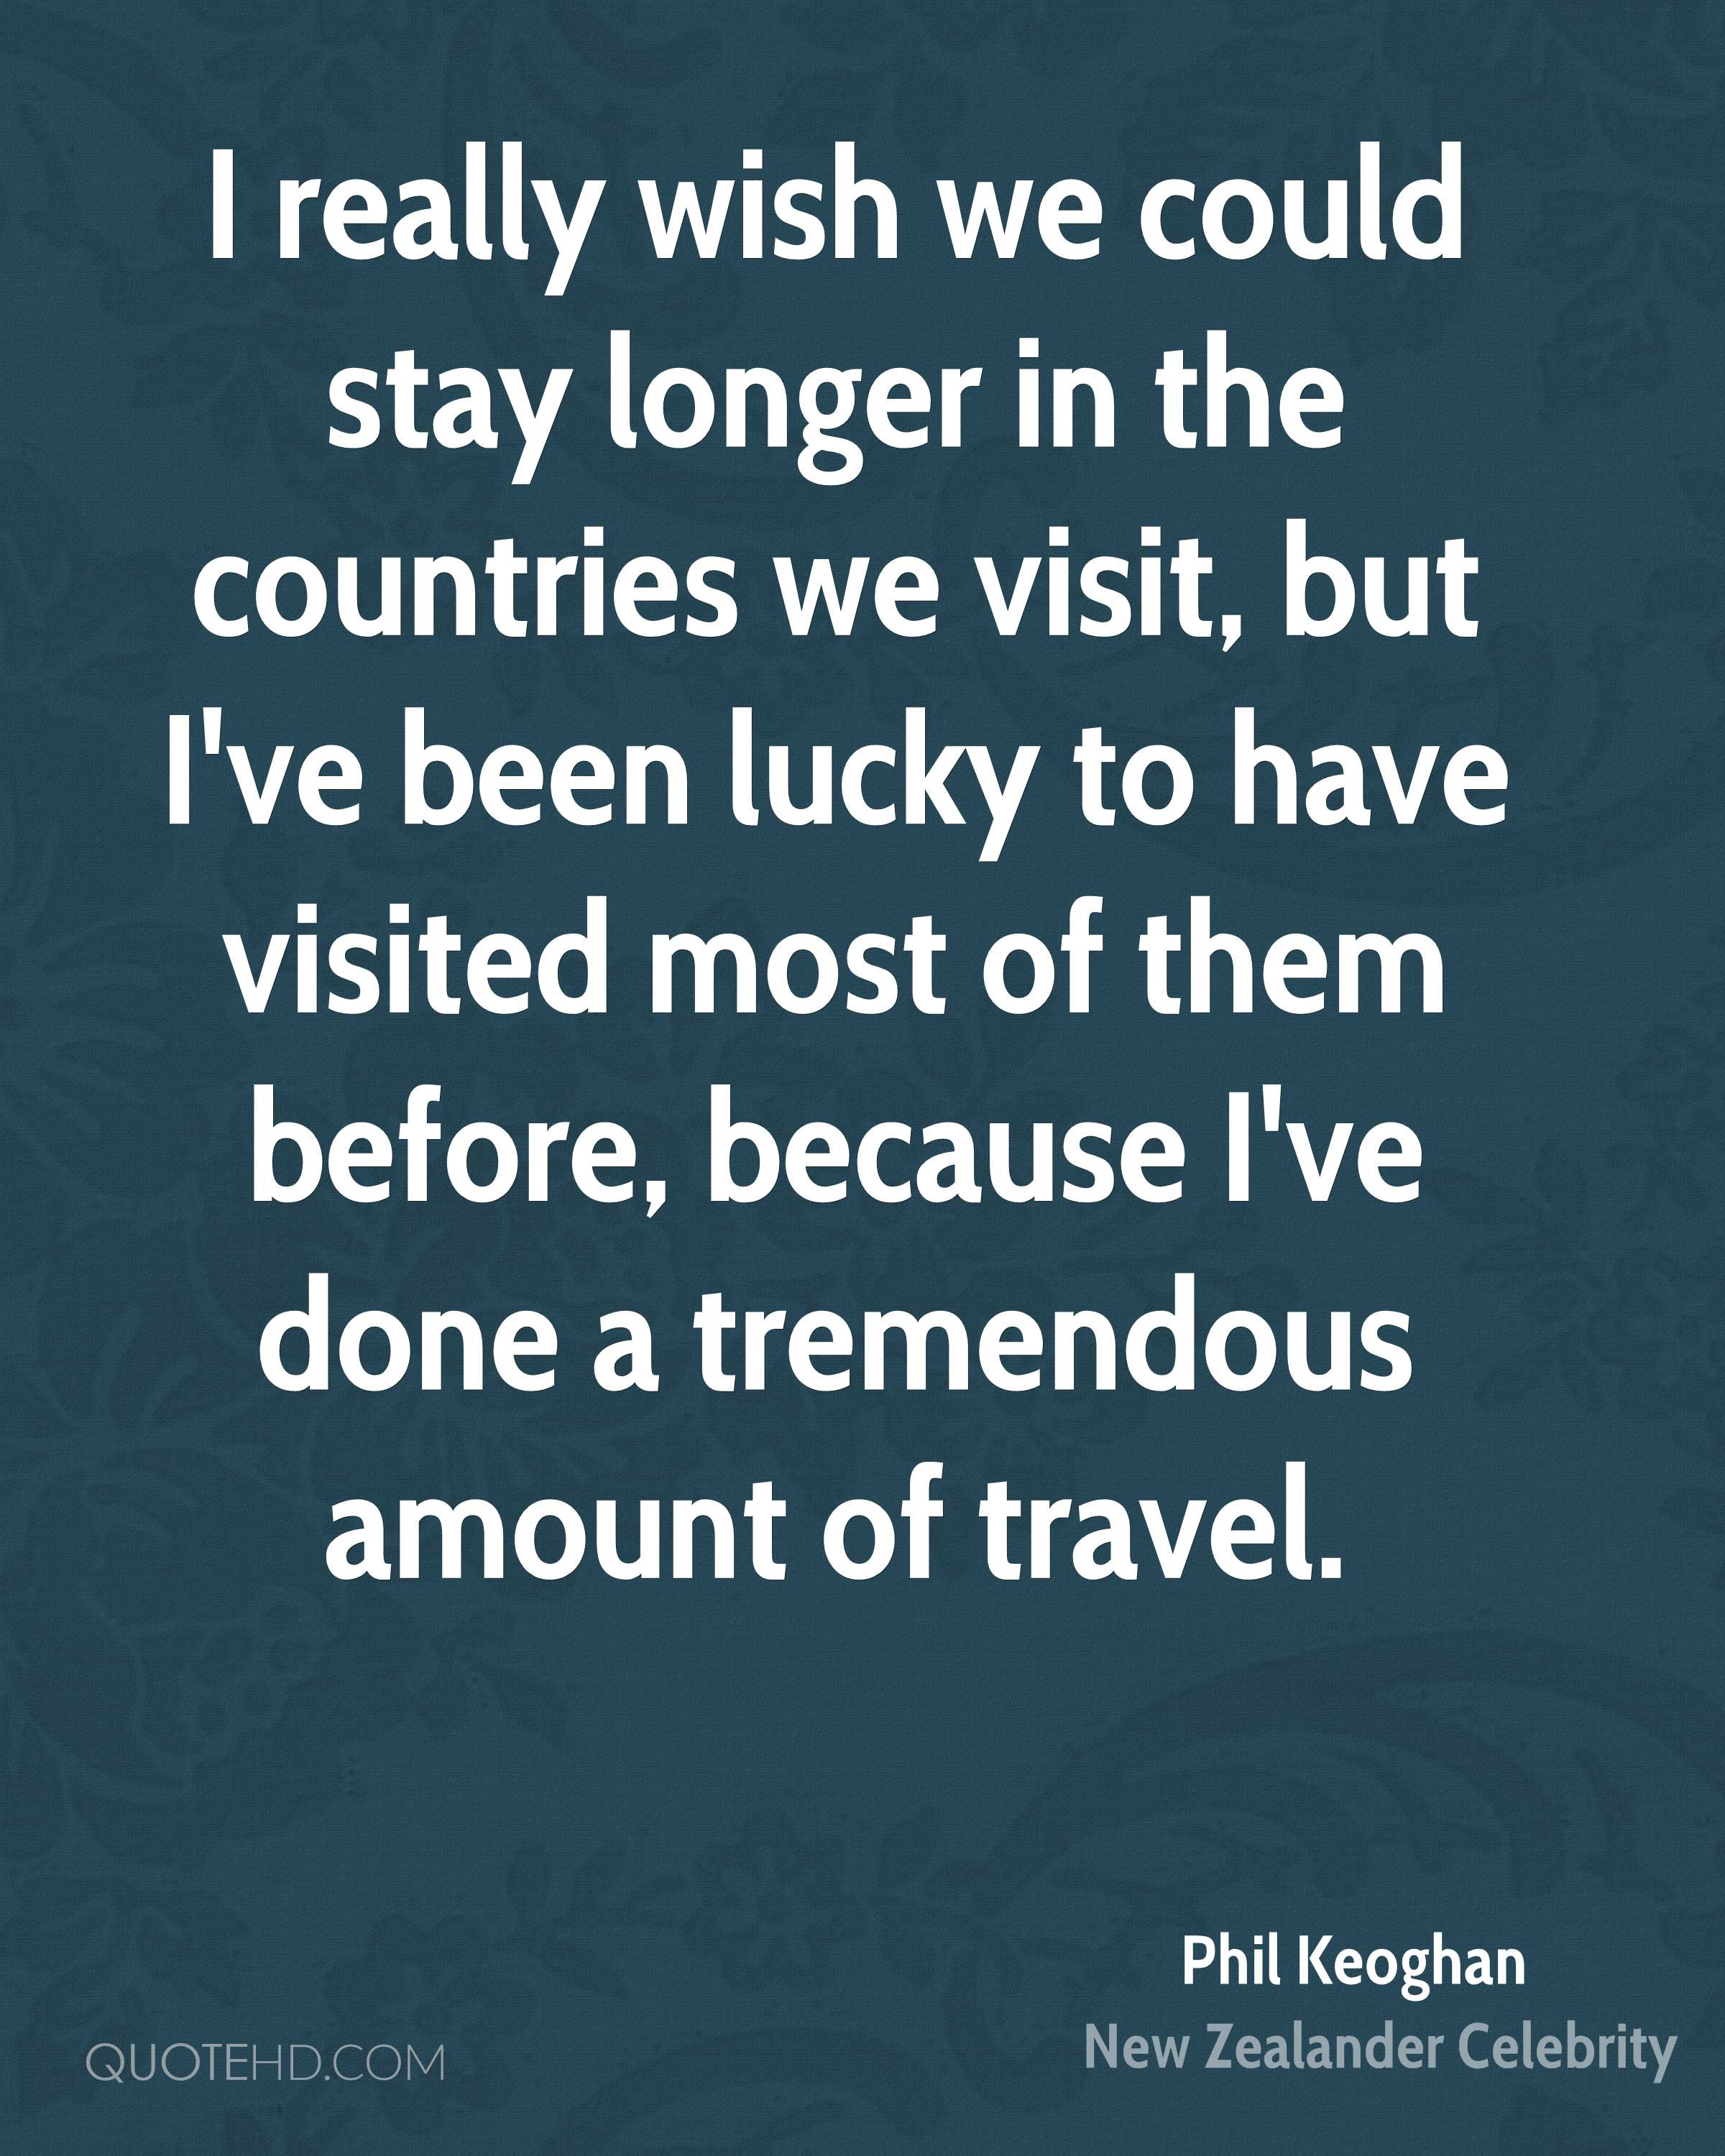 I really wish we could stay longer in the countries we visit, but I've been lucky to have visited most of them before, because I've done a tremendous amount of travel.